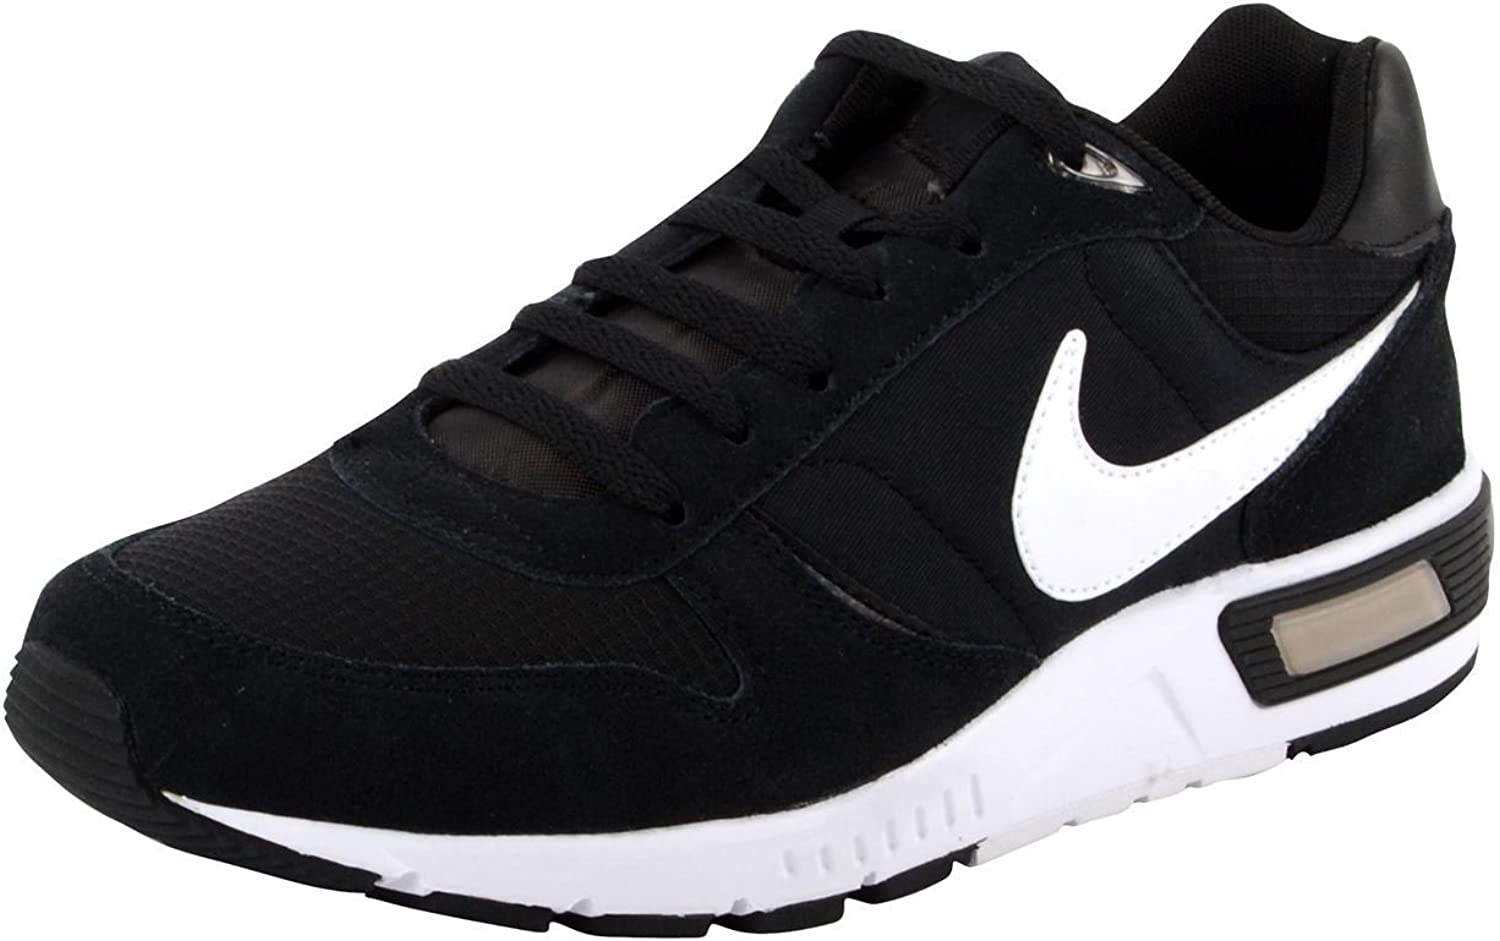 Nike Nightgazer Running shoes Mens Black White Fitness Sports Trainers Sneakers